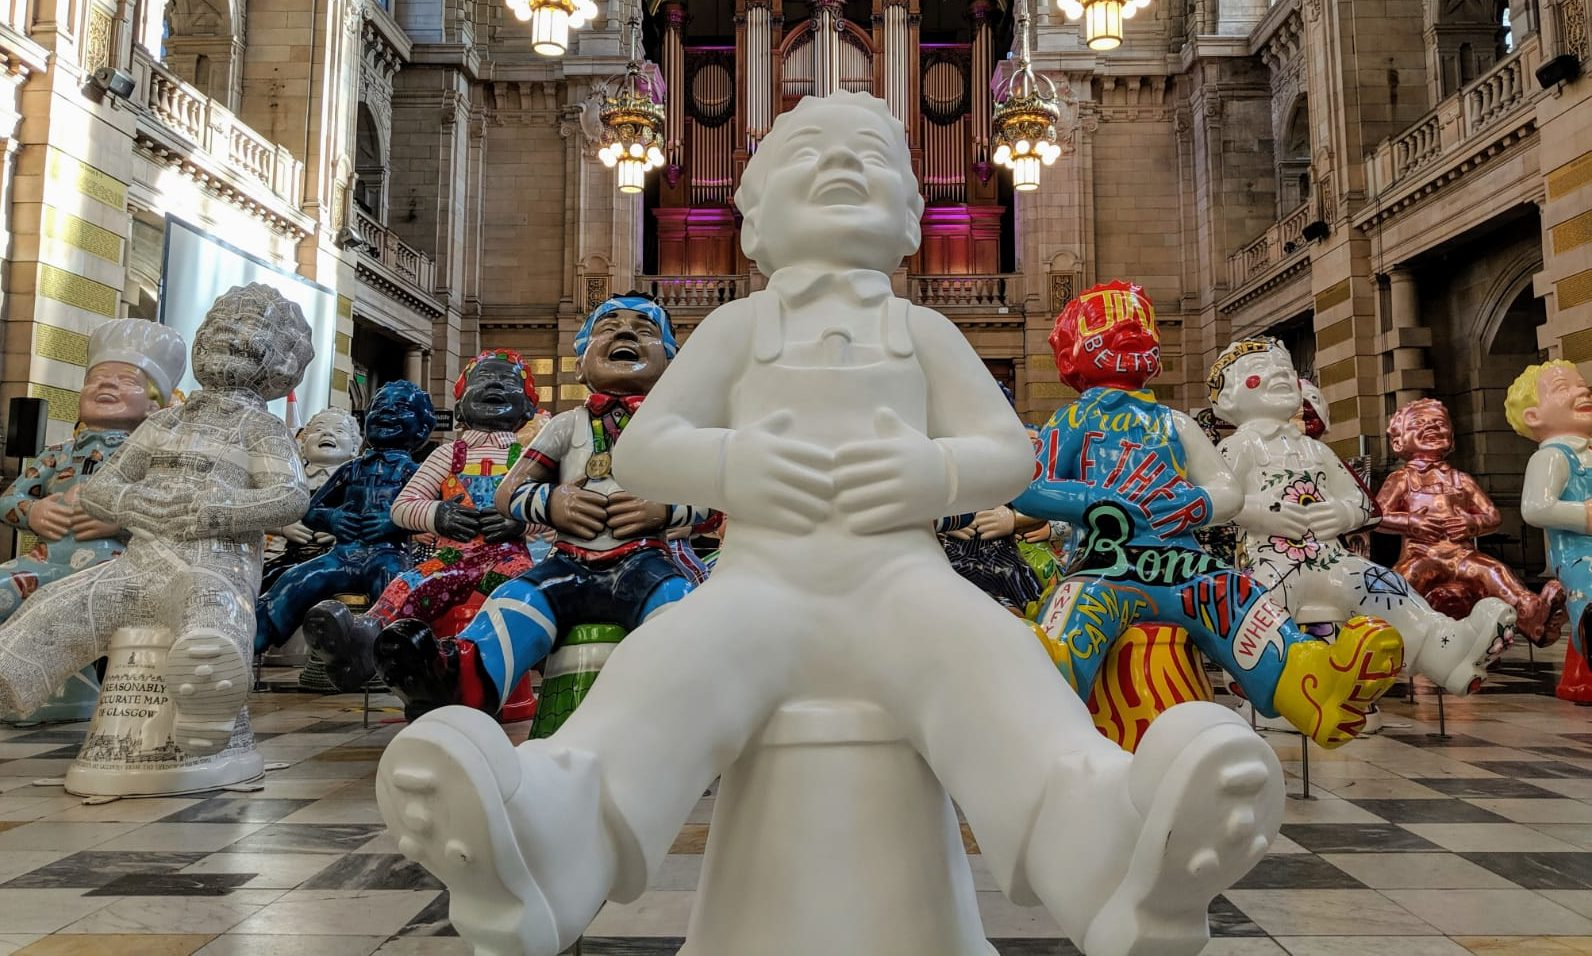 The statues up for grabs in Glasgow.